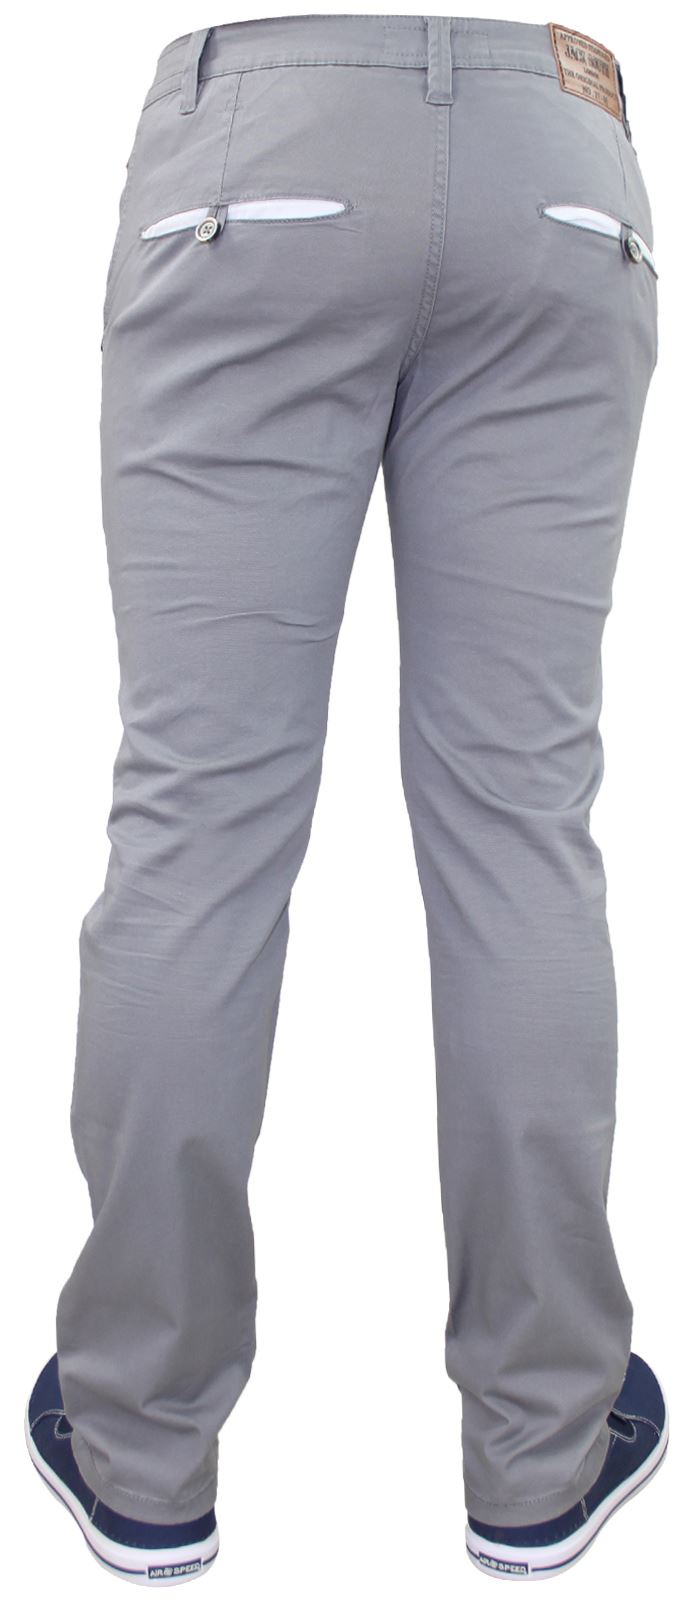 Men-Chinos-Trousers-Regular-Fit-Stretch-Cotton-Jeans-Pants-All-Waist-Sizes thumbnail 11